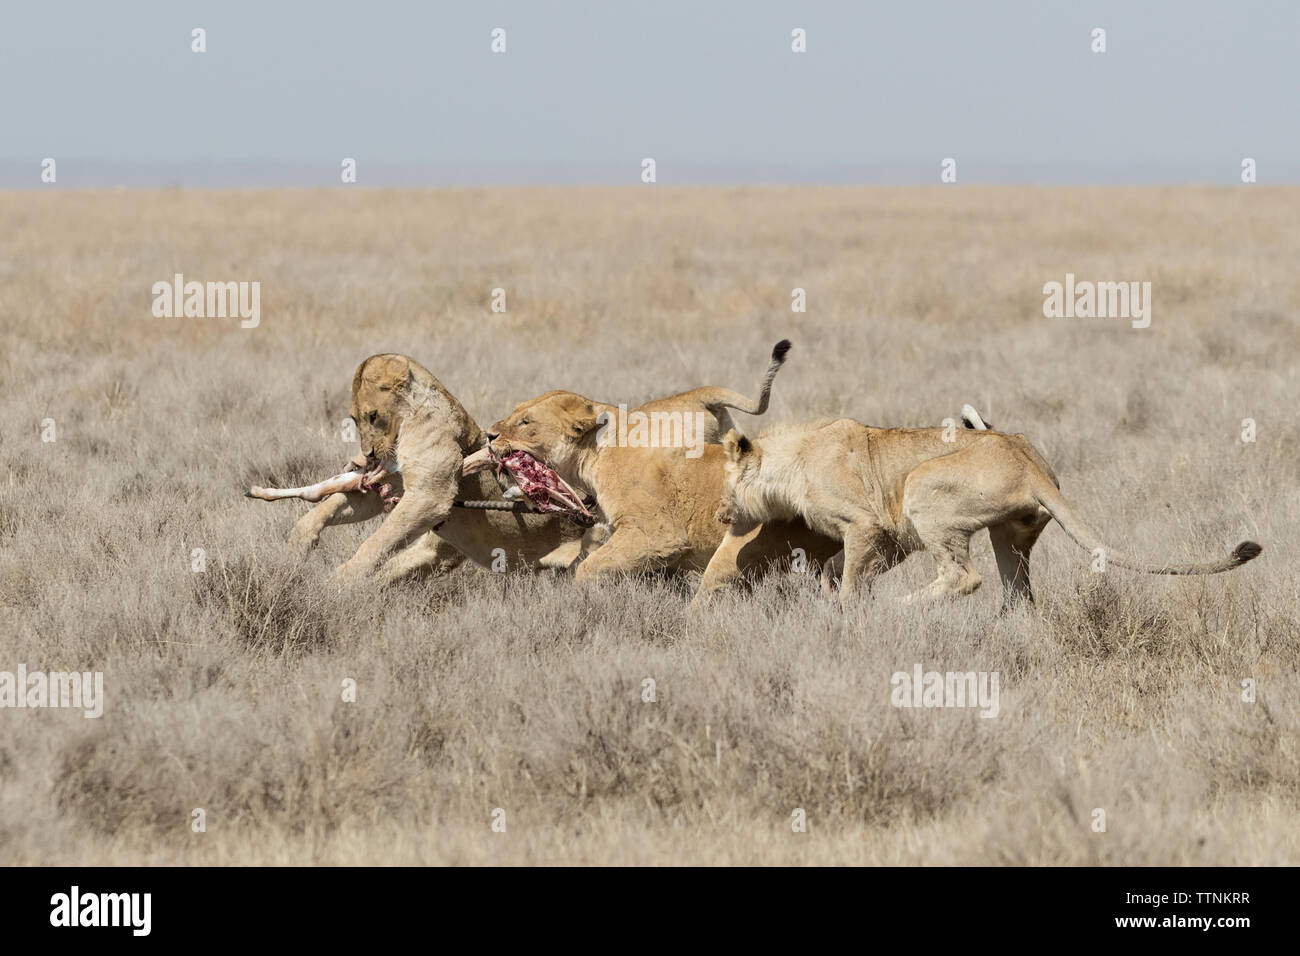 Lions  (Panthera leo) fighting over remains of a kill, Ndutu, Tanzania - Stock Image